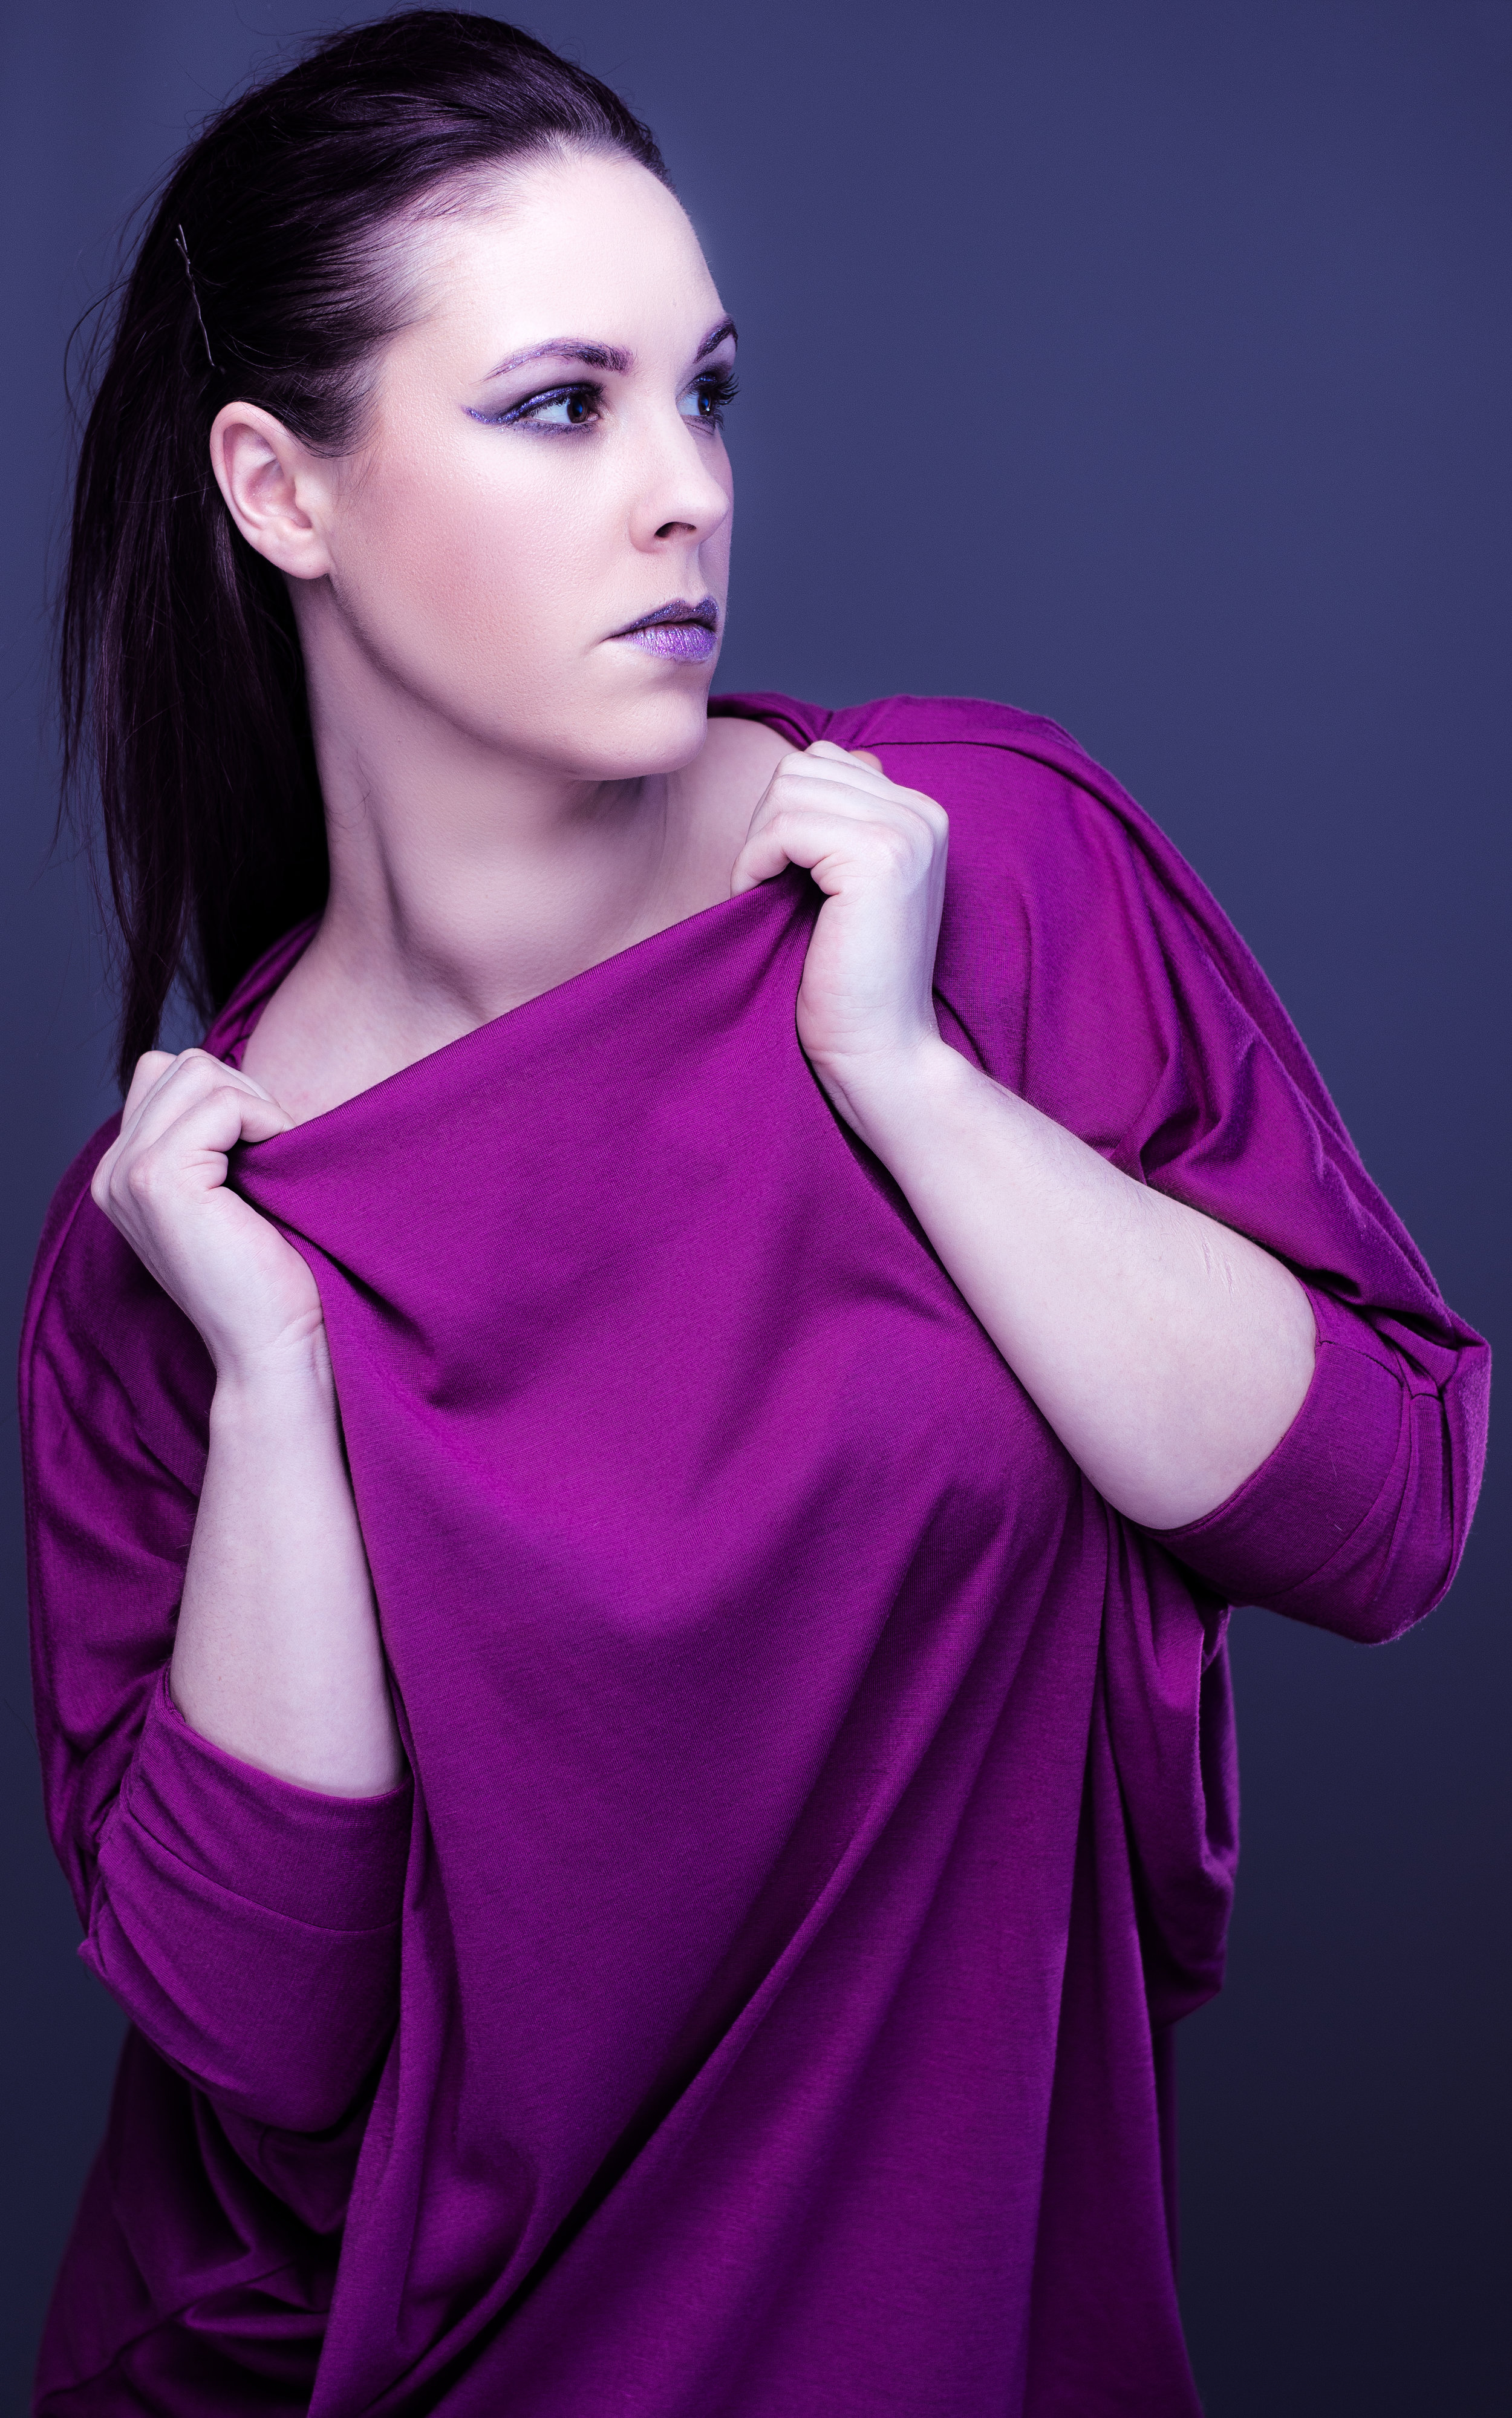 zaramia-ava-zaramiaava-leeds-fashion-designer-ethical-sustainable-minimalist-ayaka-magenta-dress-versatile-drape-cowl-styling-studio-womenswear-models-photoshoot-vibrant-colour-5